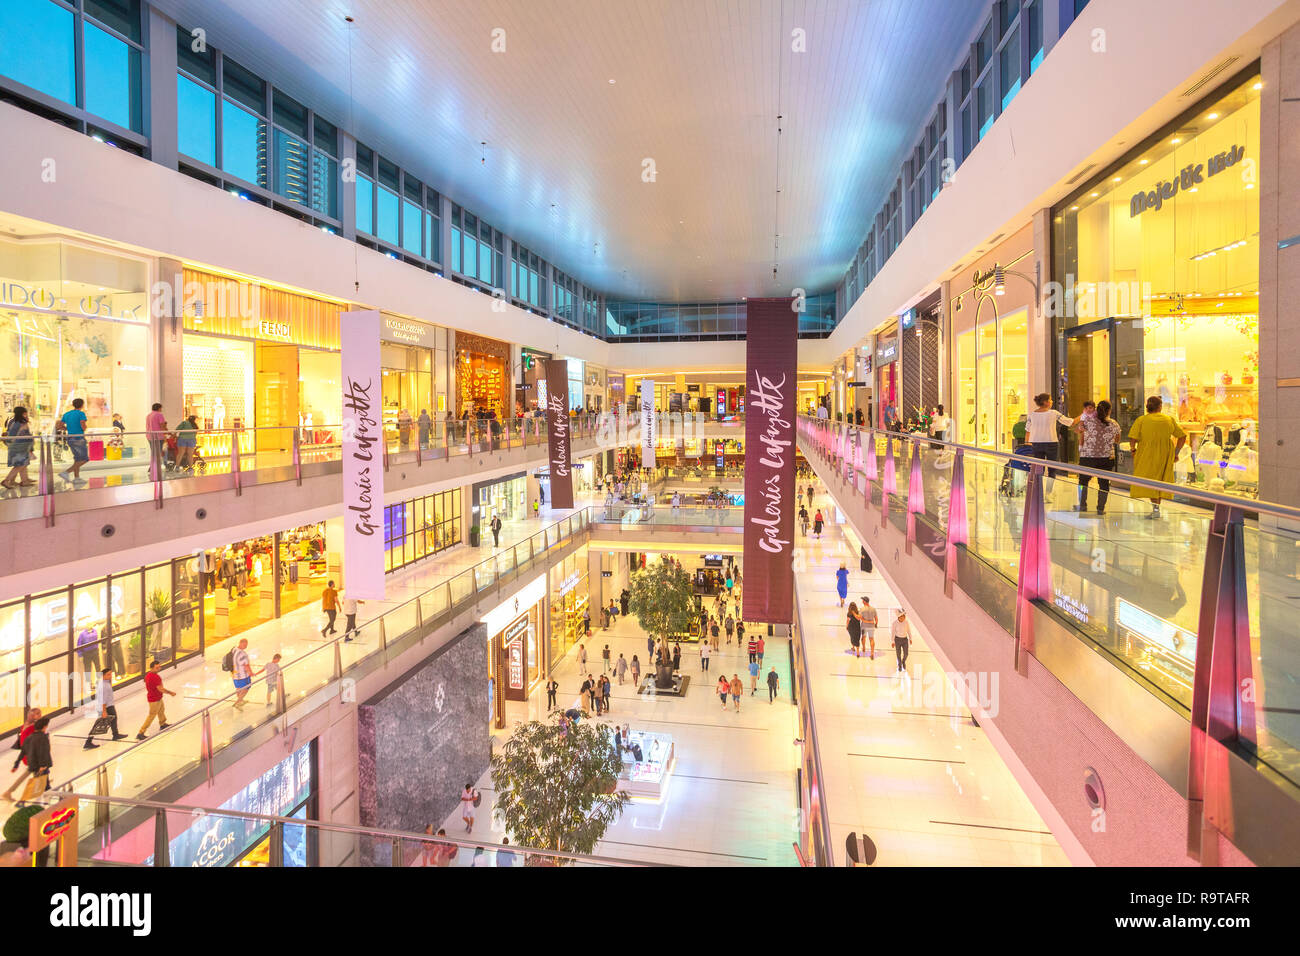 DUBAI, UAE - NOV 12, 2018: shoppers in Dubai Mall, the world's largest shopping mall based on total area and sixth largest by gross leasable area Stock Photo